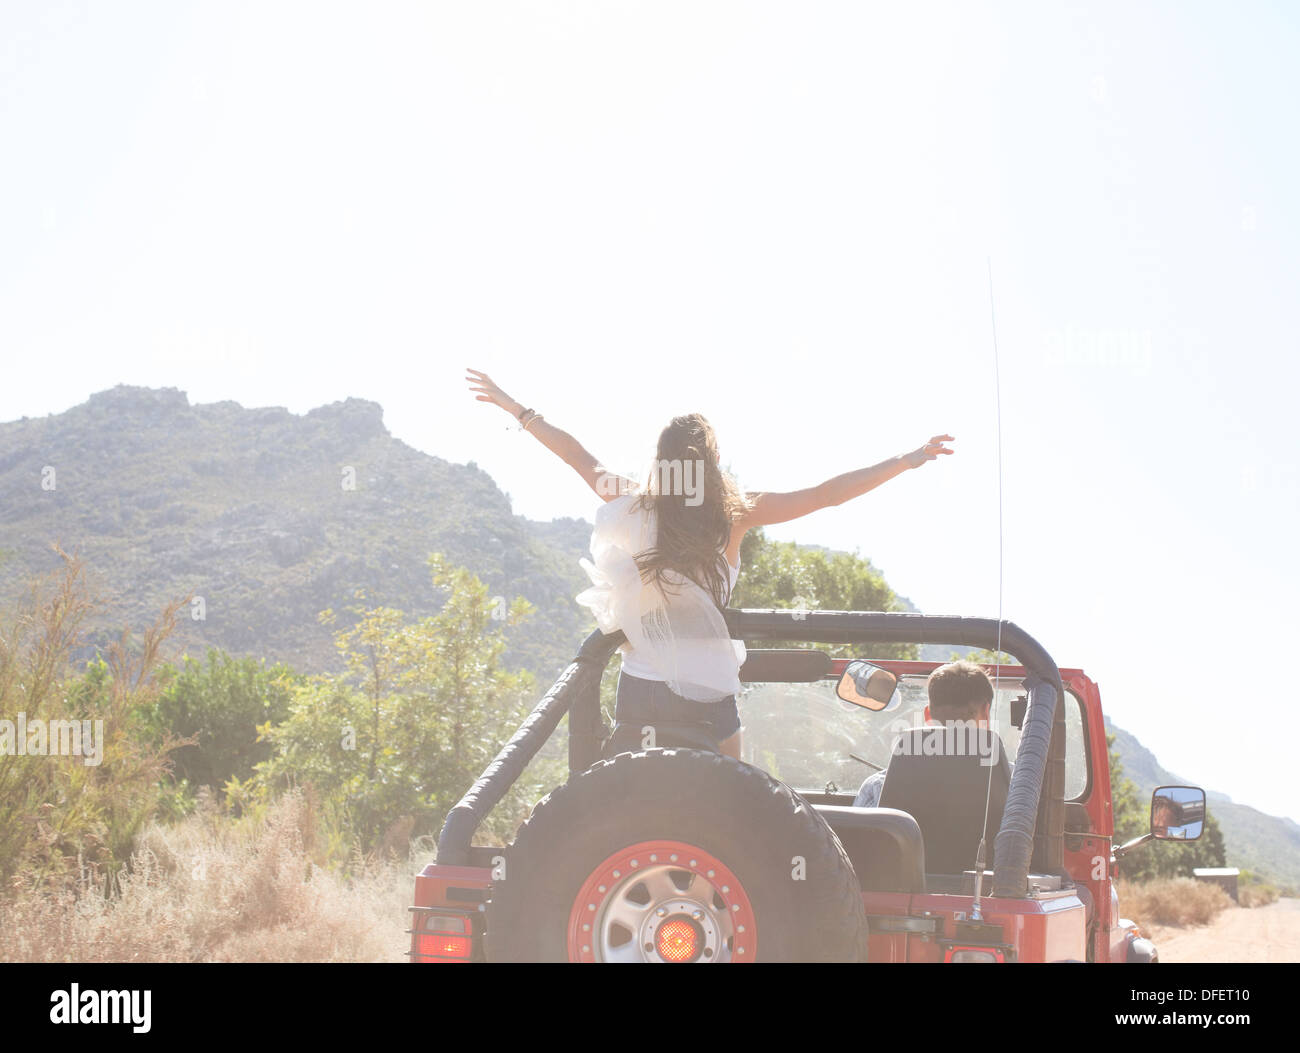 Woman standing in sport utility vehicle - Stock Image